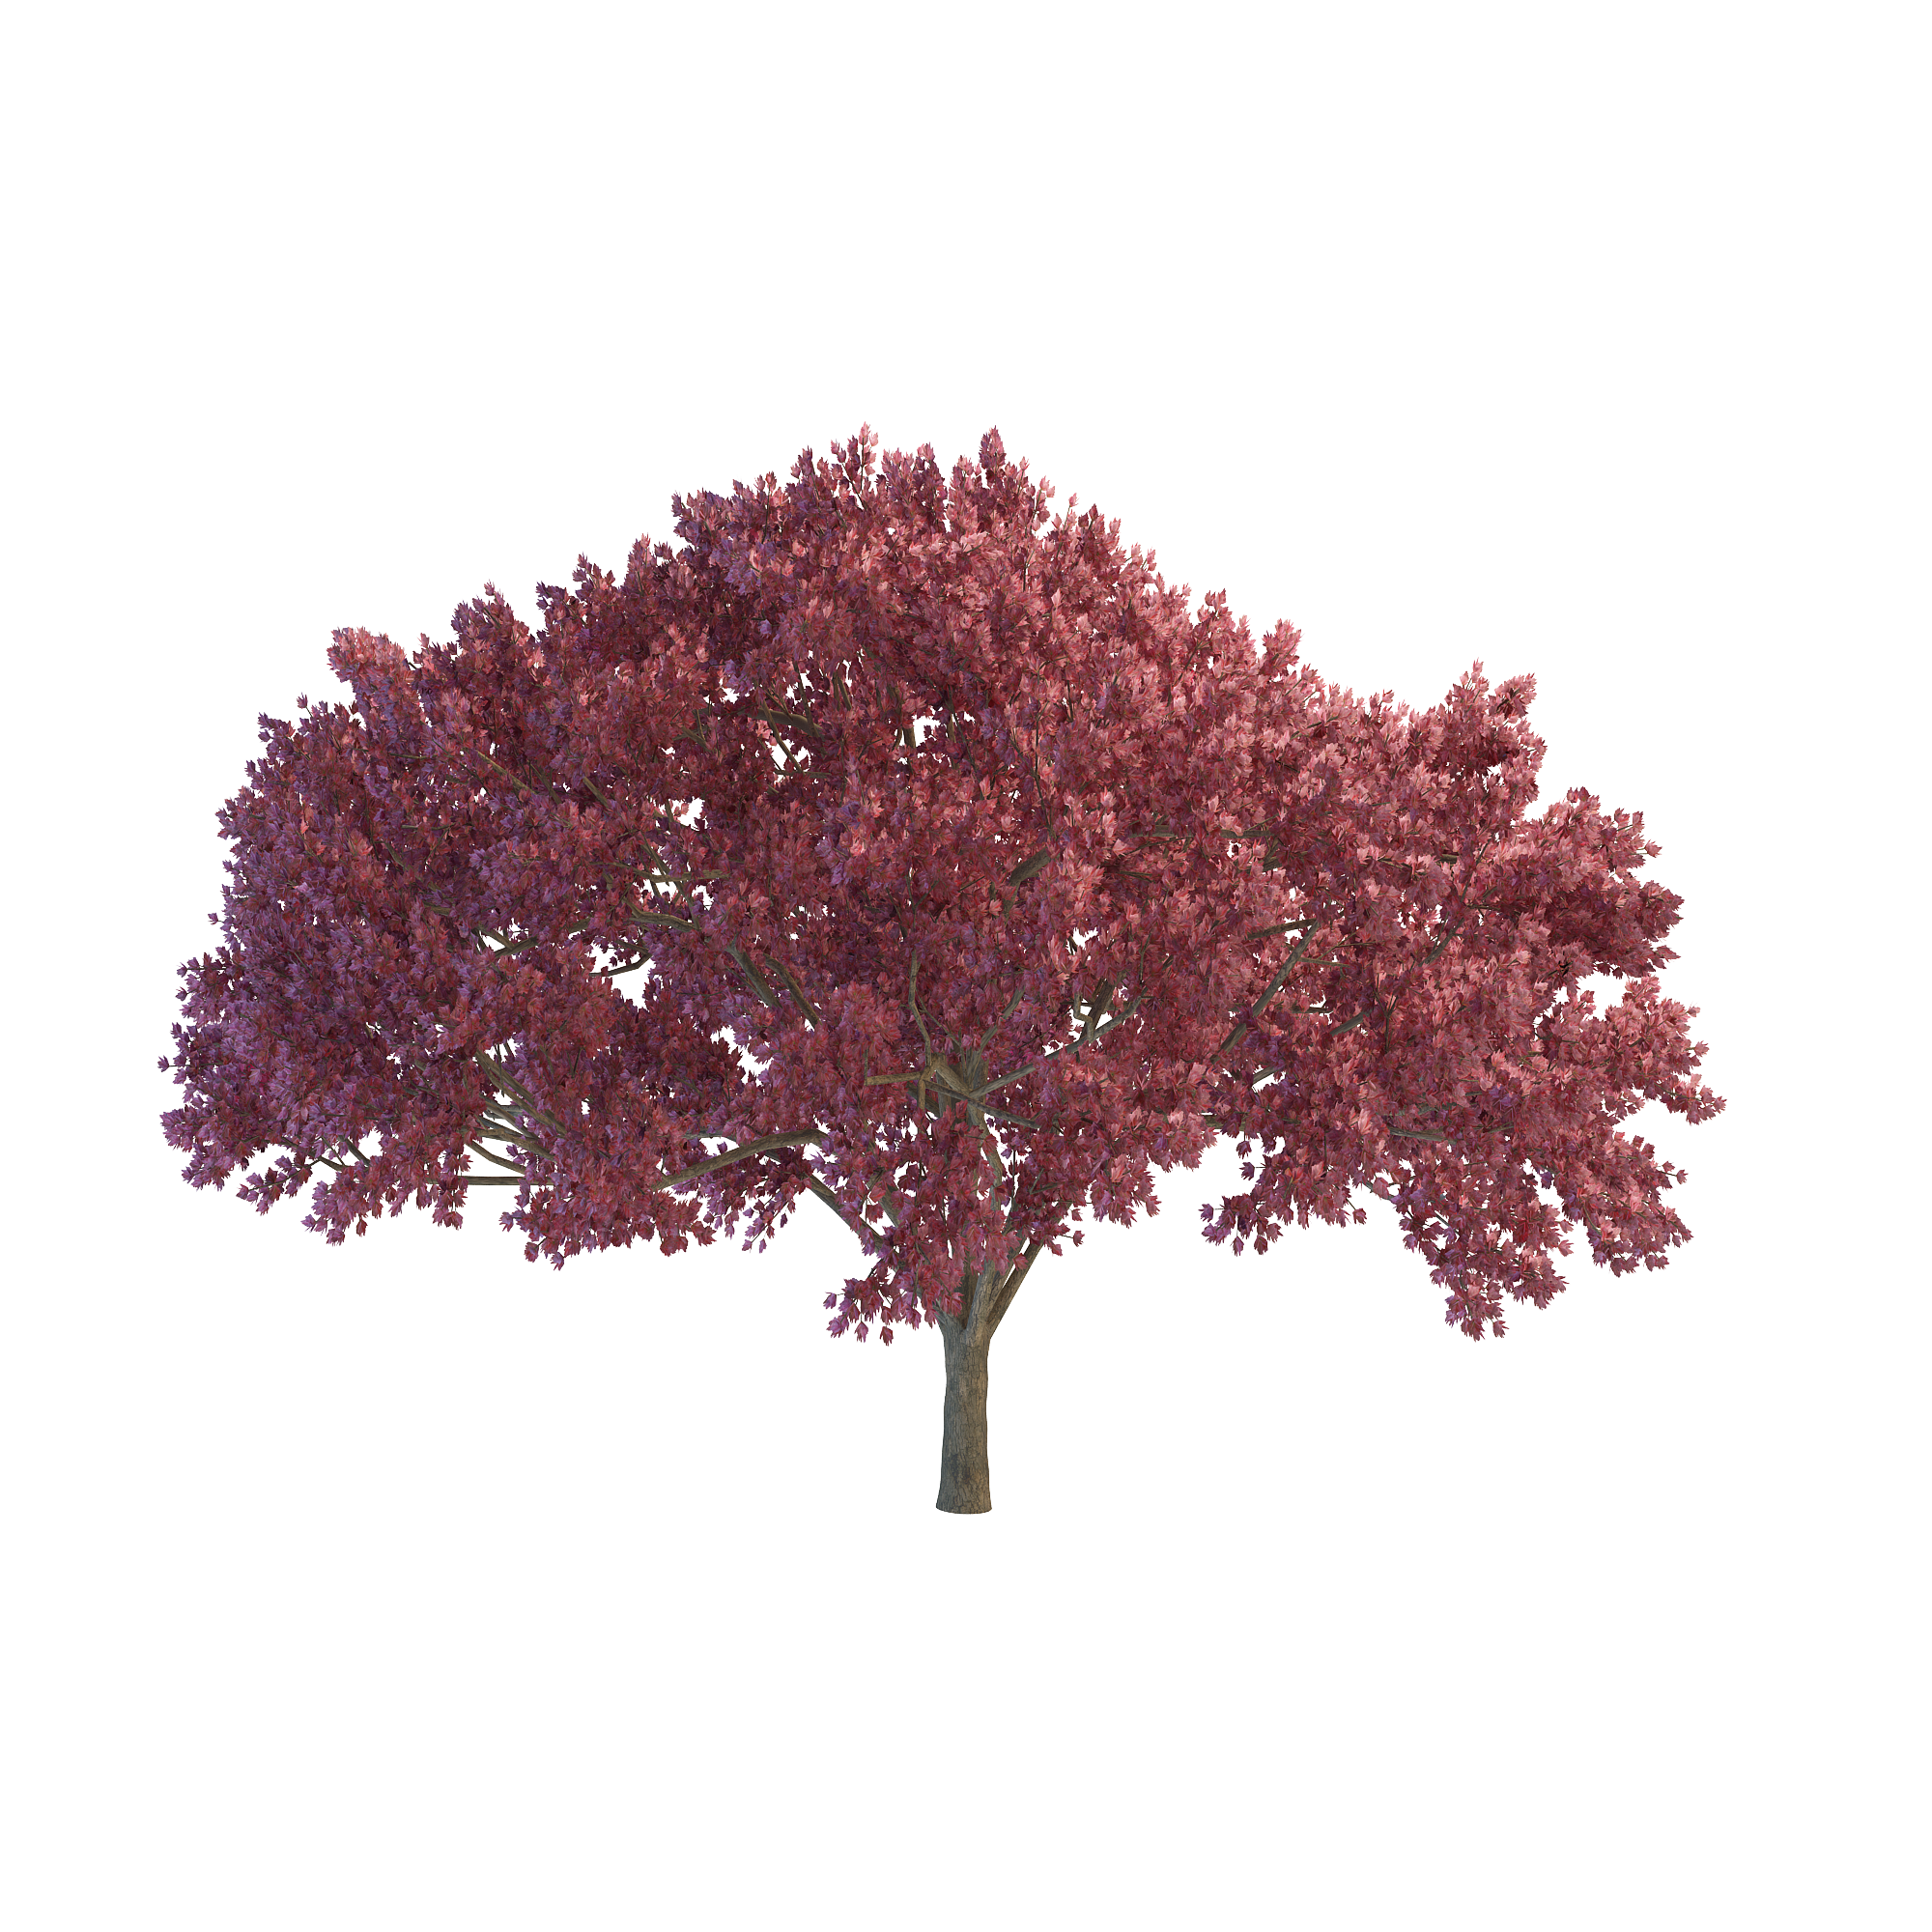 Red tree png. Cherry images transparent free